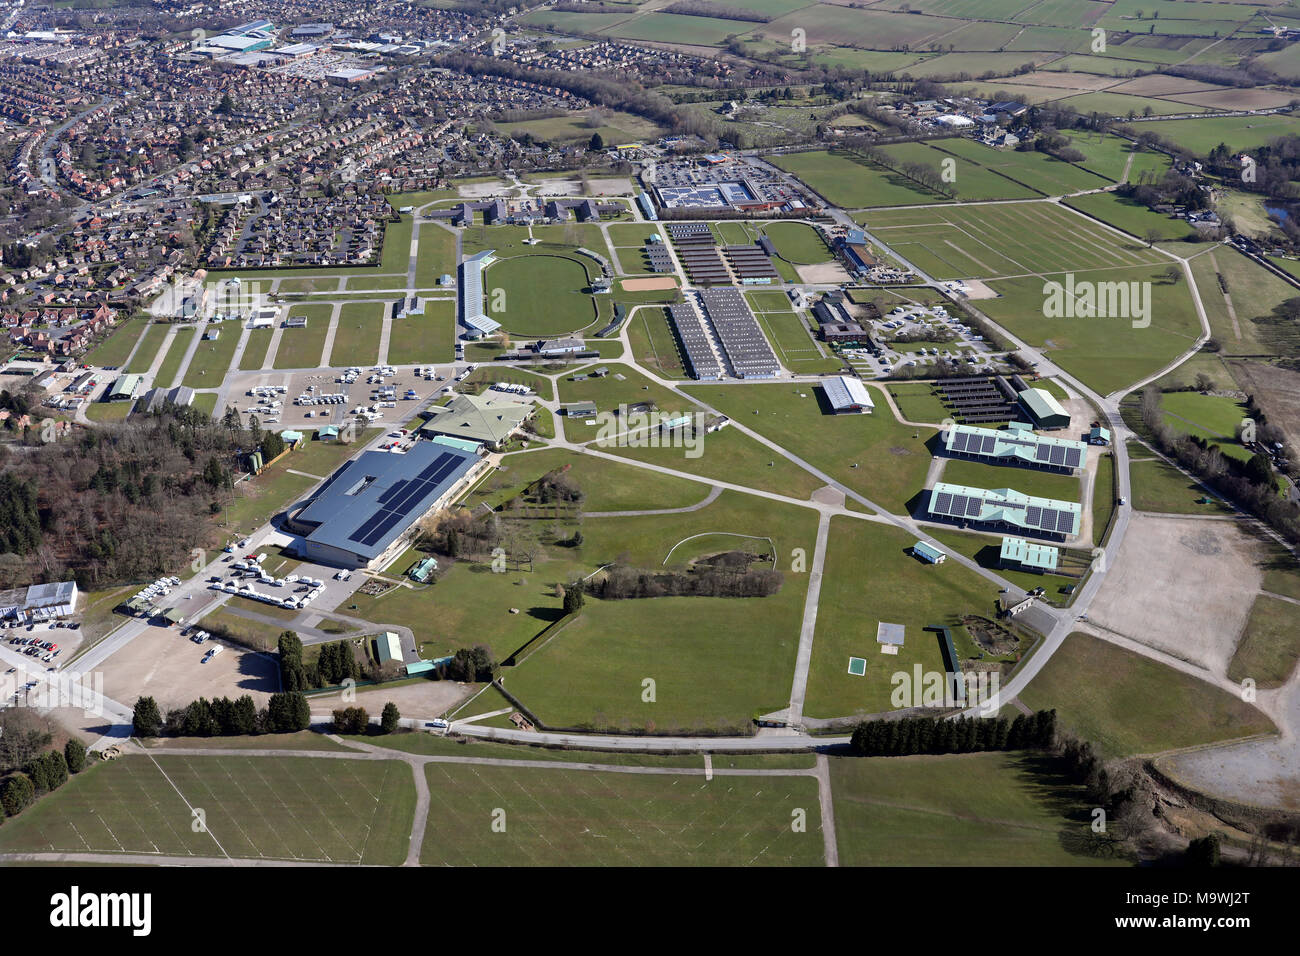 aerial view of Harrogate Showground - Stock Image